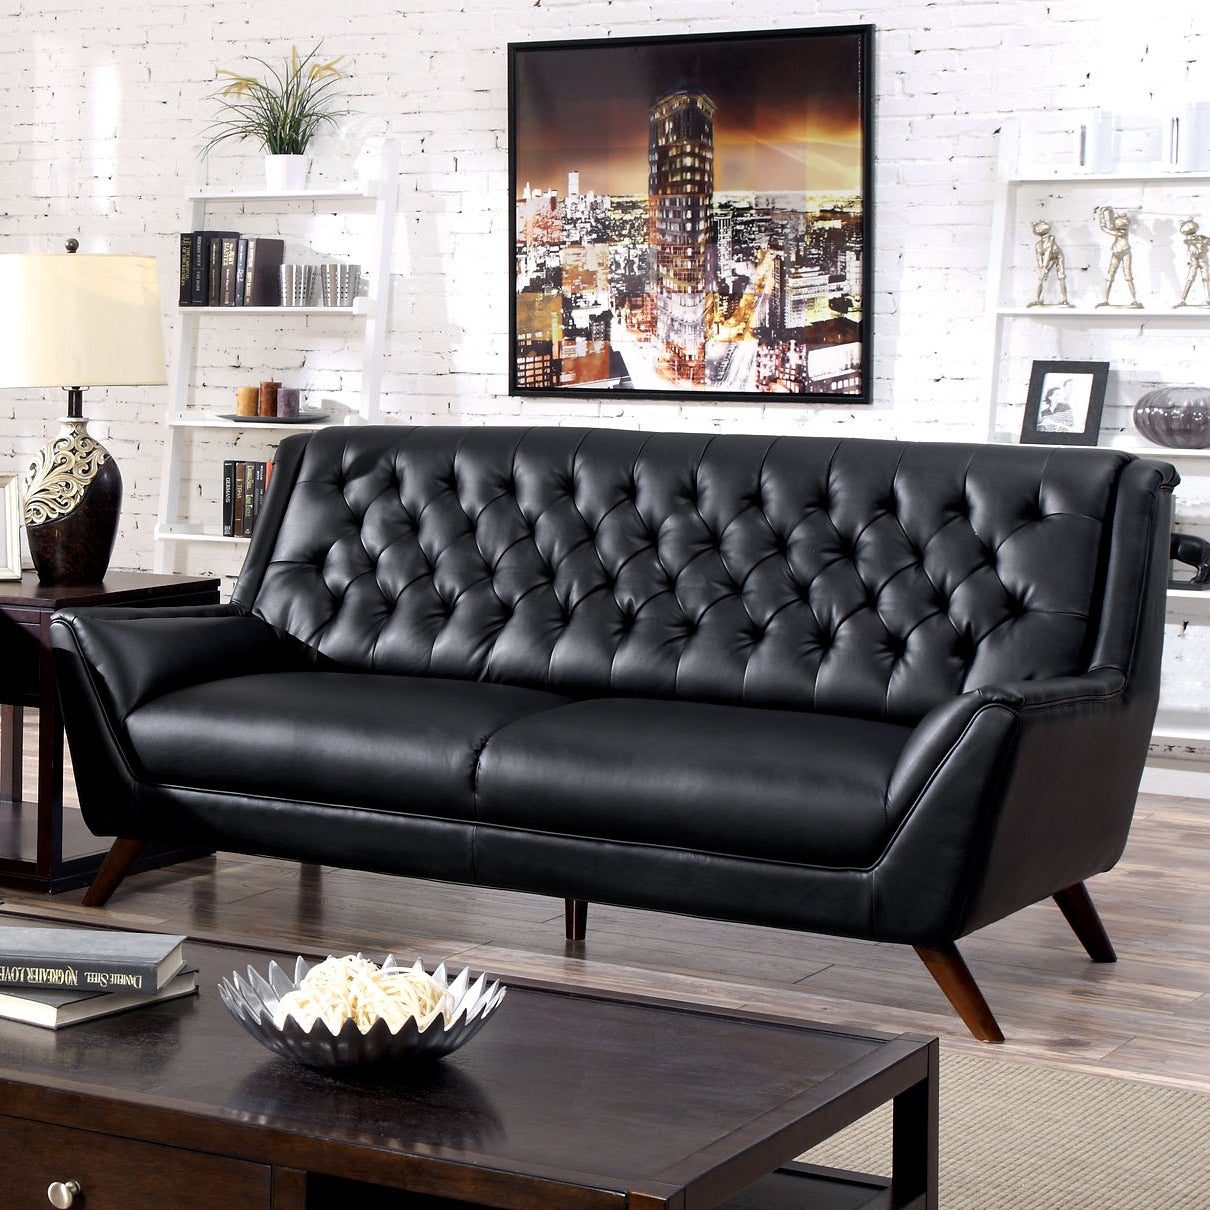 Furniture Of America Valentino Mid Century Modern Bonded Leather Sofa Free Shipping Today 9762574